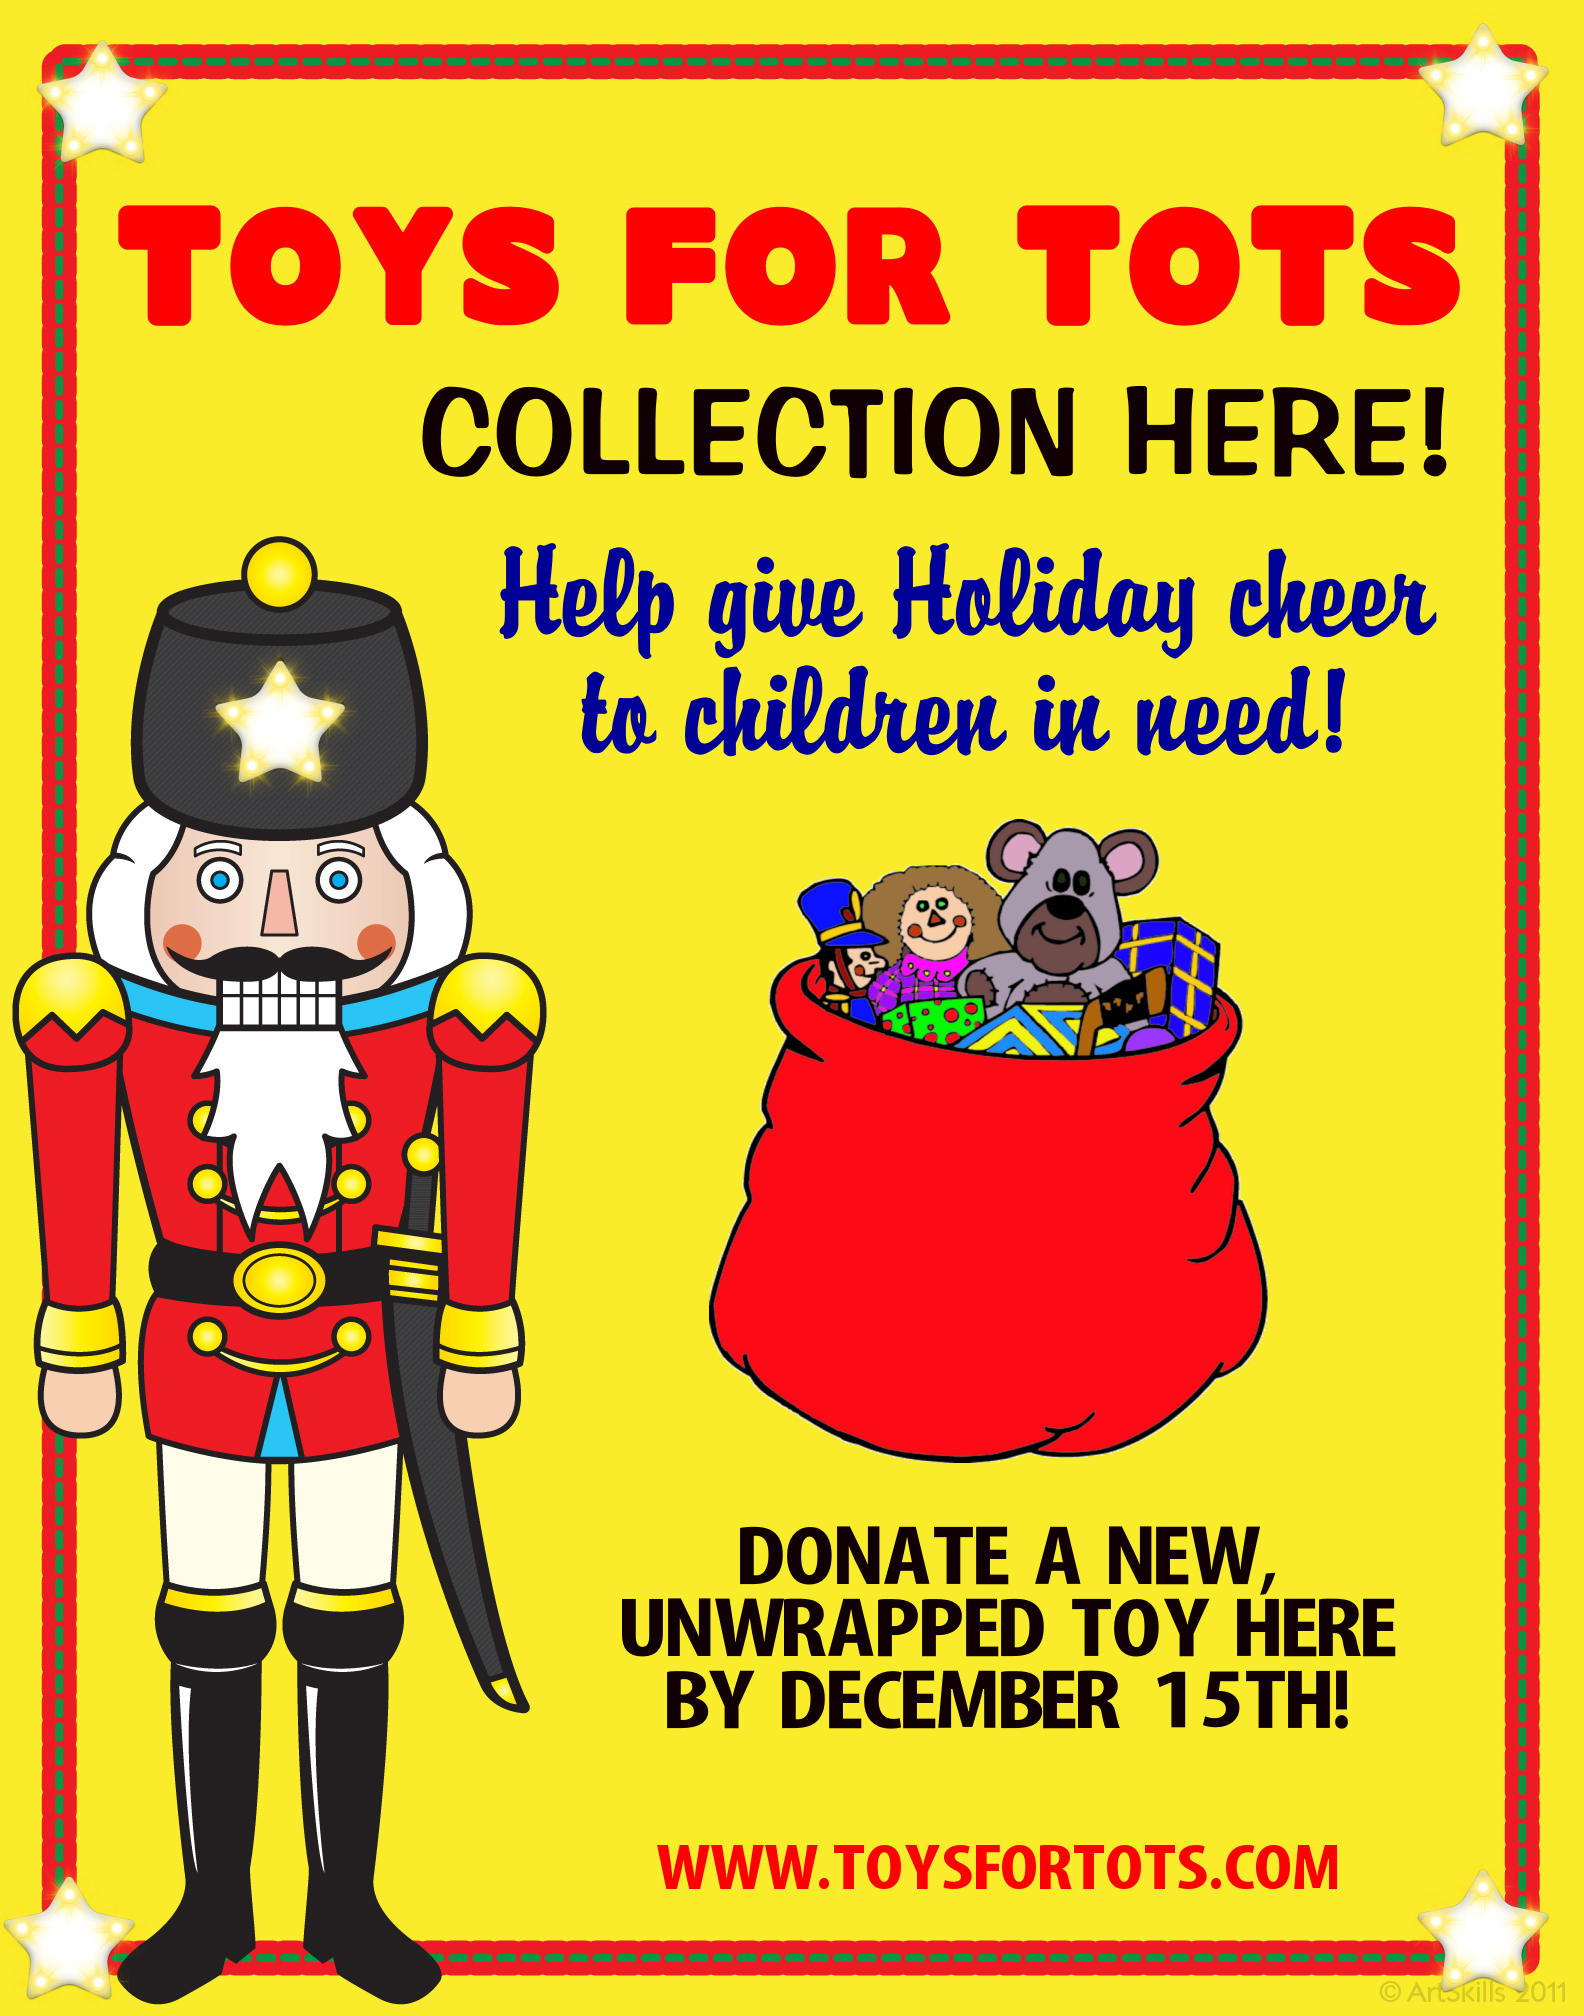 Usmc Toys For Tots Program Posters : Toys for tots fundraising poster project ideas